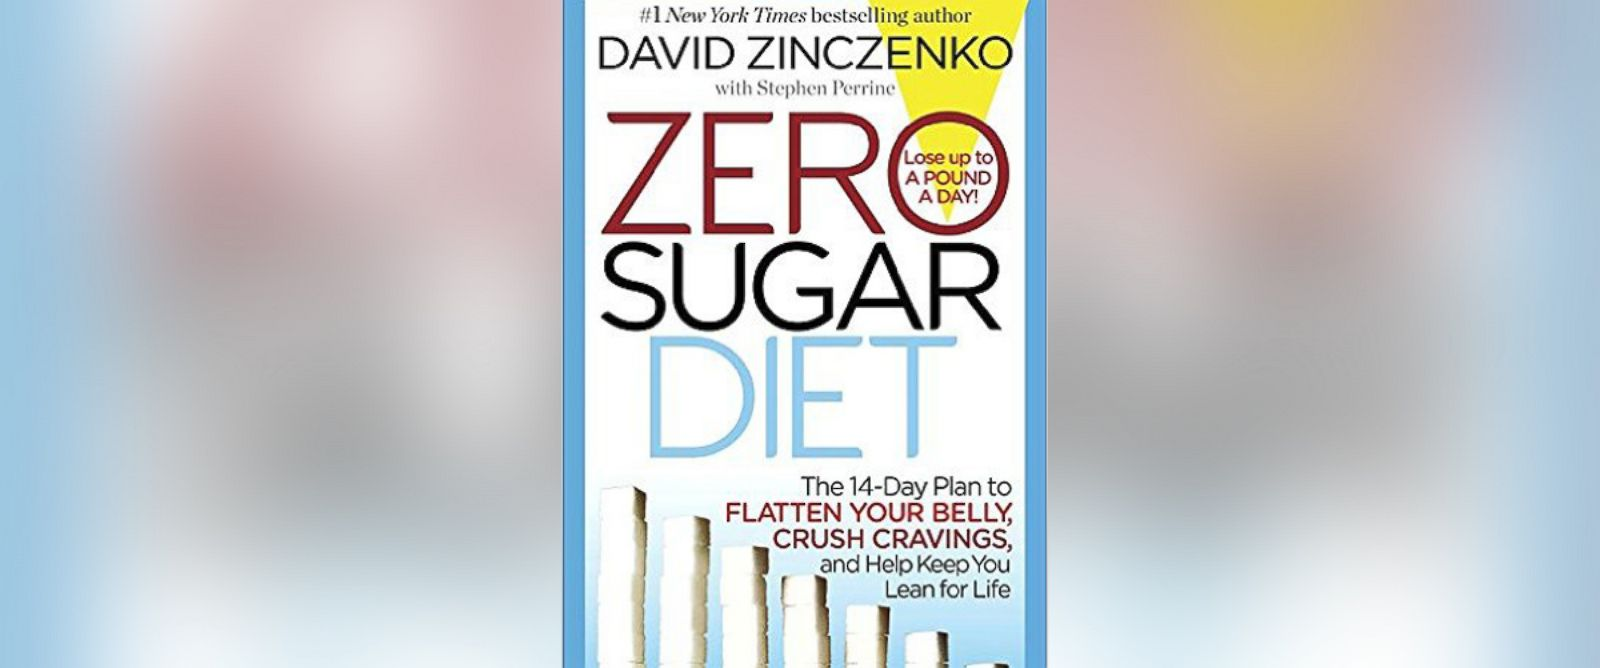 "PHOTO: Book cover for ""Zero Sugar Diet: The 14-Day Plan to Flatten Your Belly, Crush Cravings, and Help Keep You Lean for Life"" by David Zinczenko."